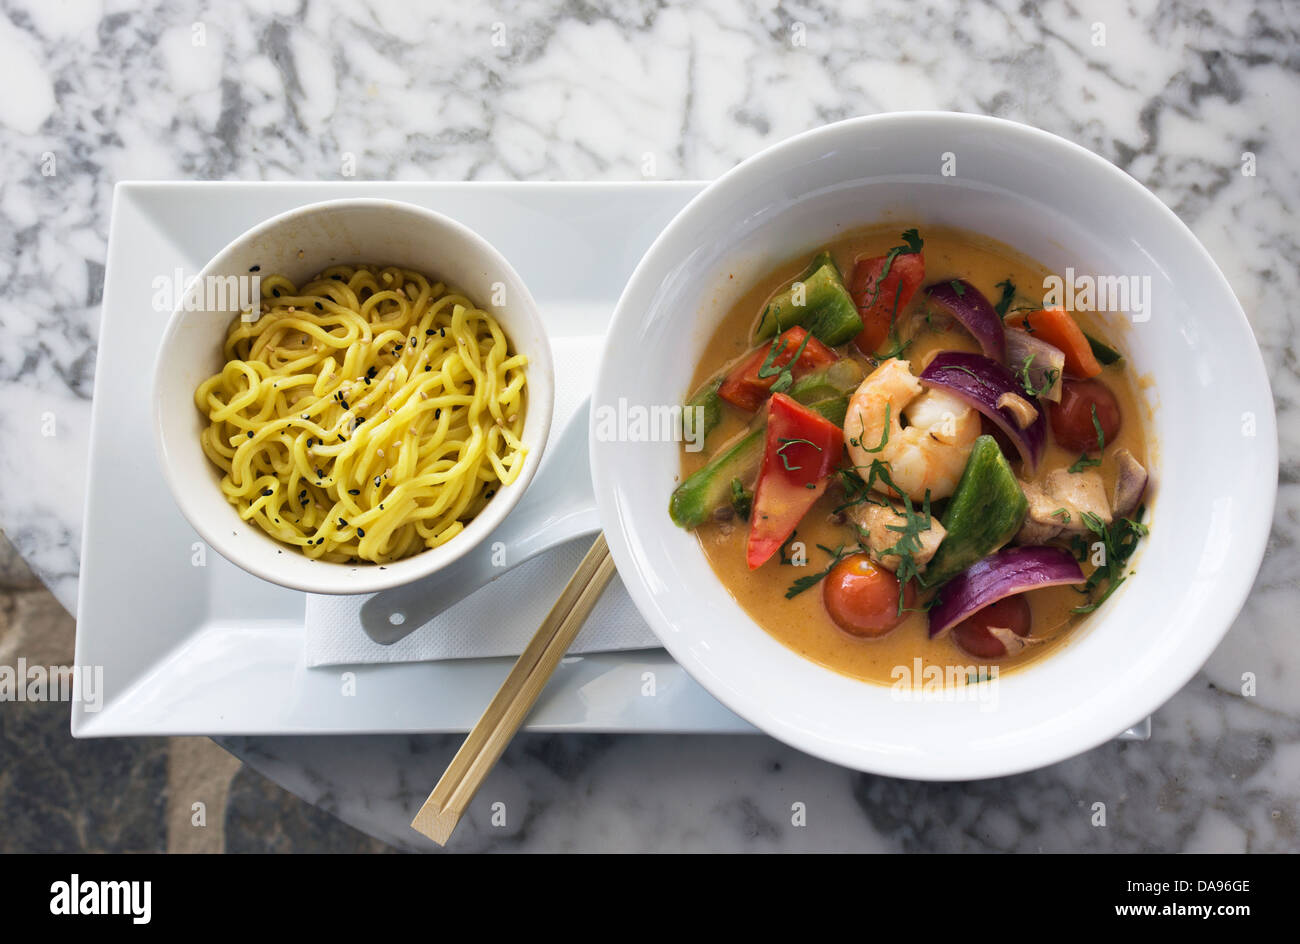 Prawn Thai Green Curry with egg noodles. - Stock Image